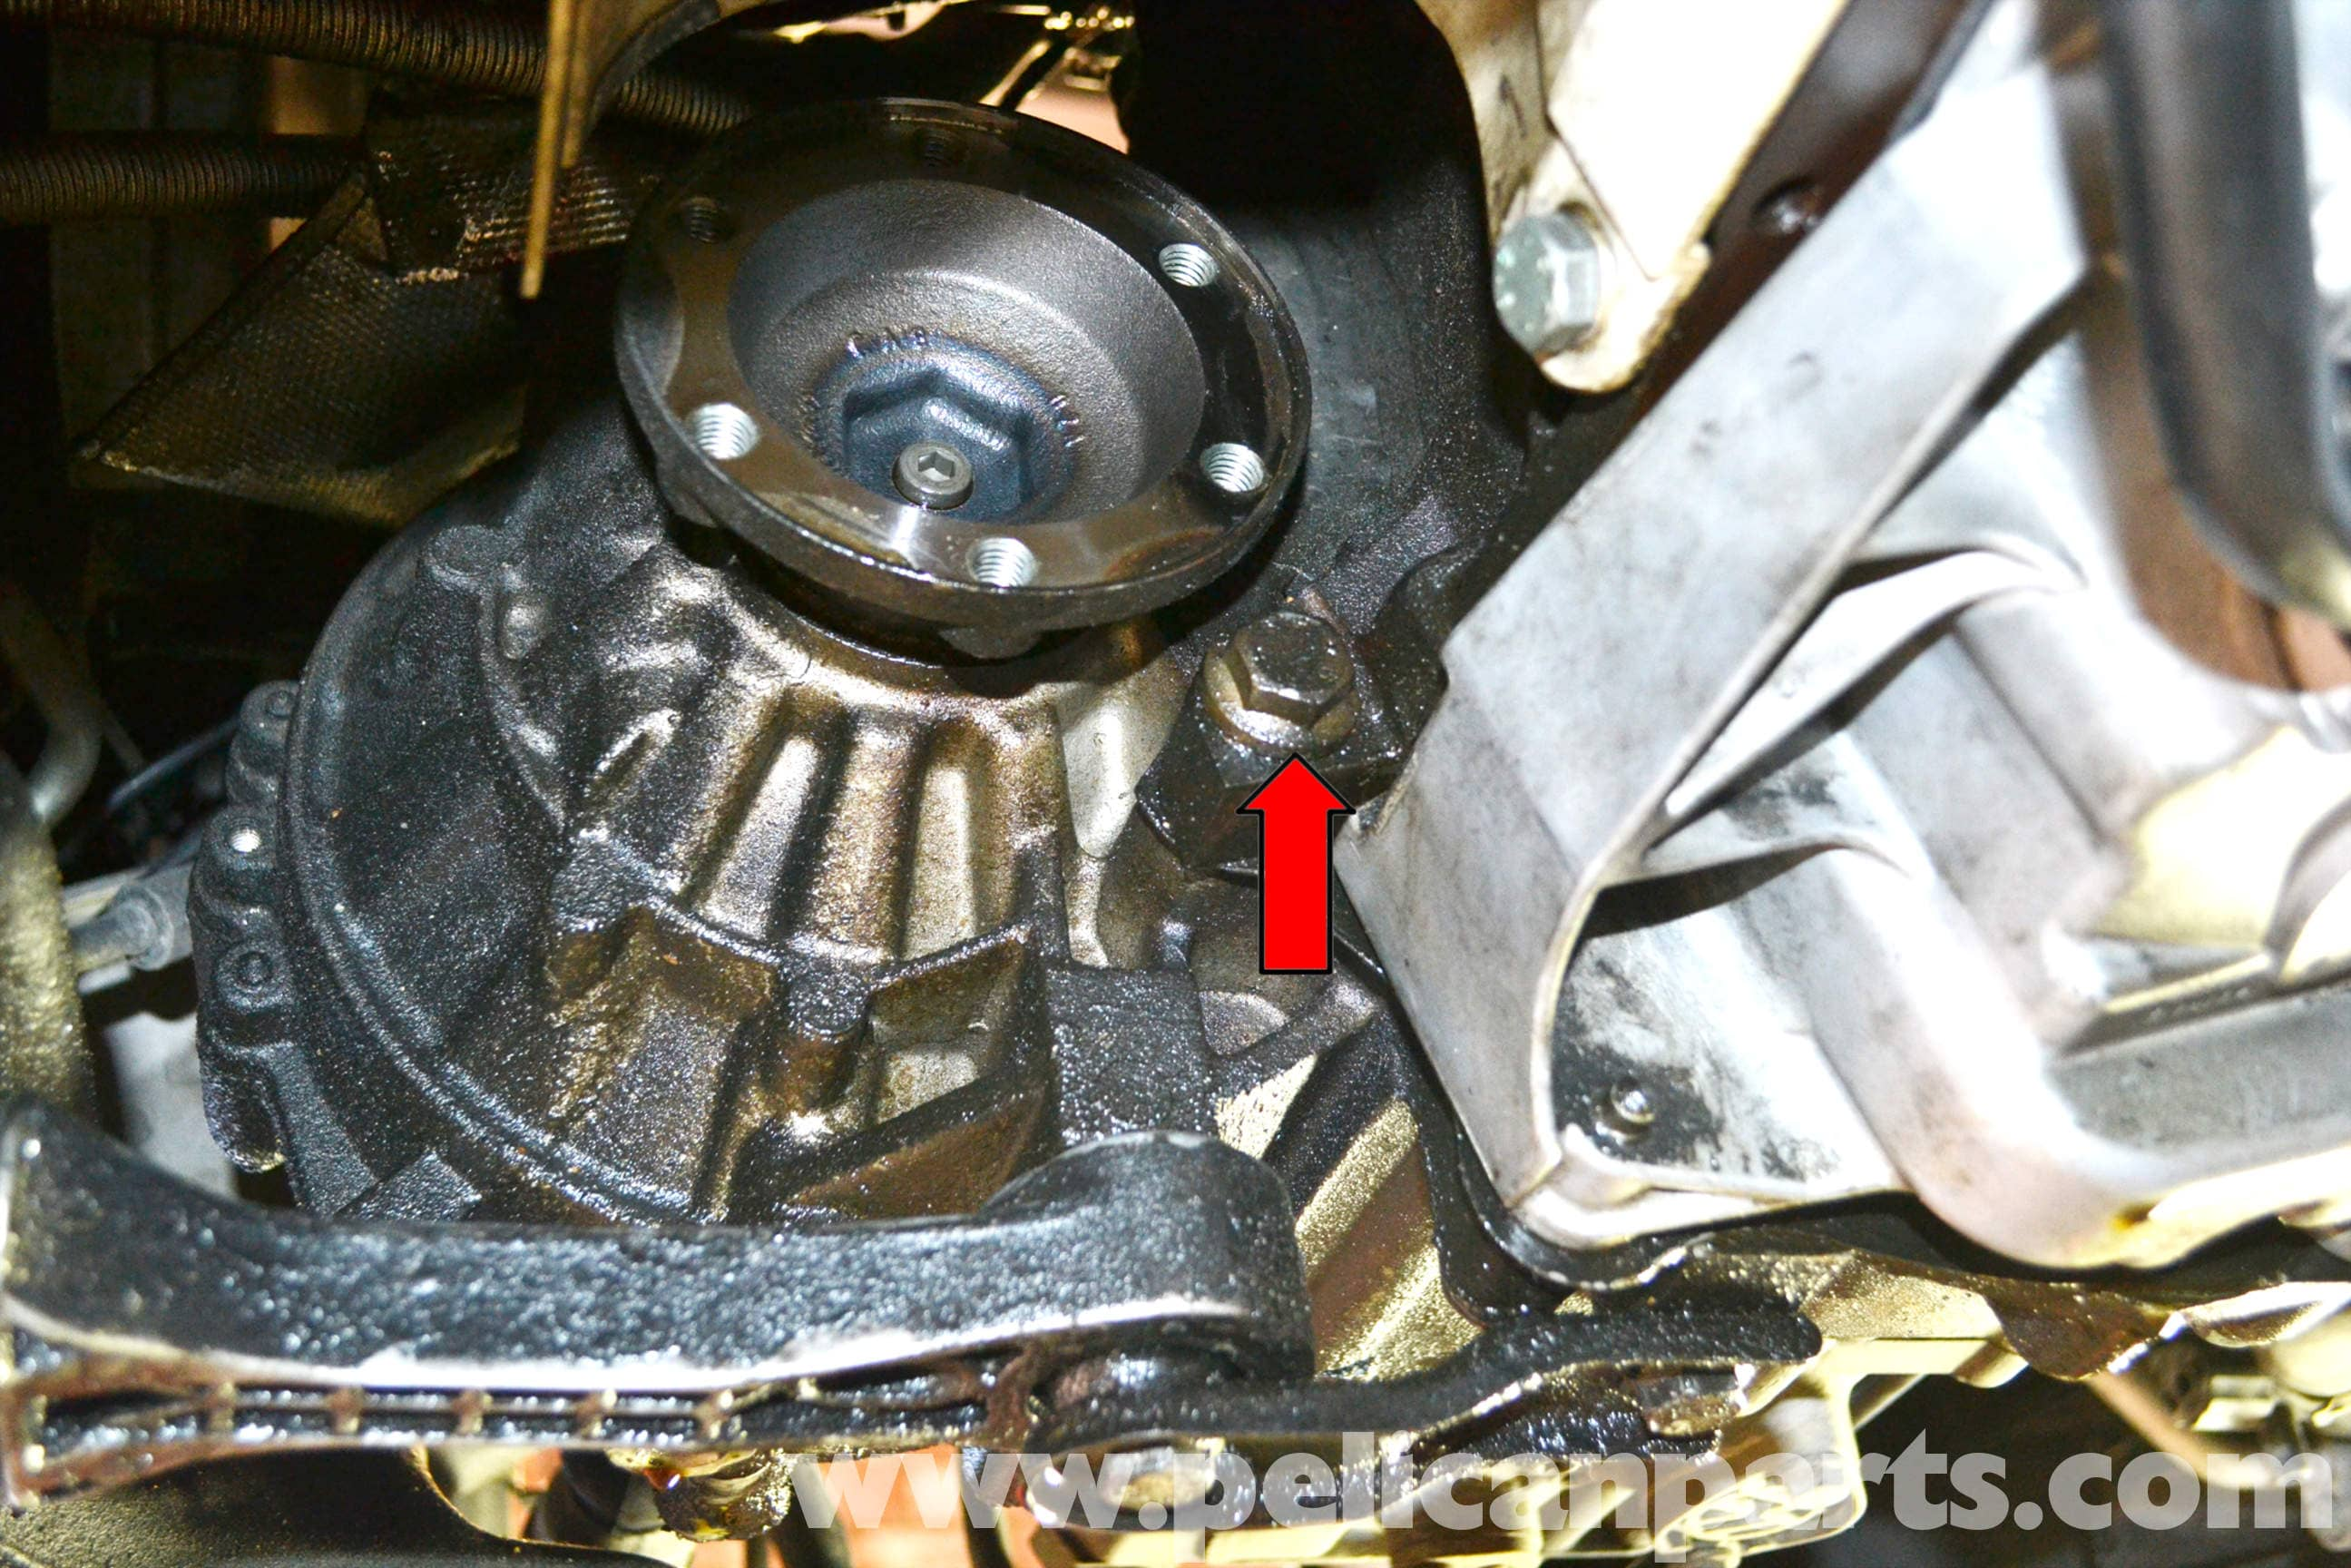 Volkswagen Golf GTI Mk IV Manual Transmission Removal (1999-2005